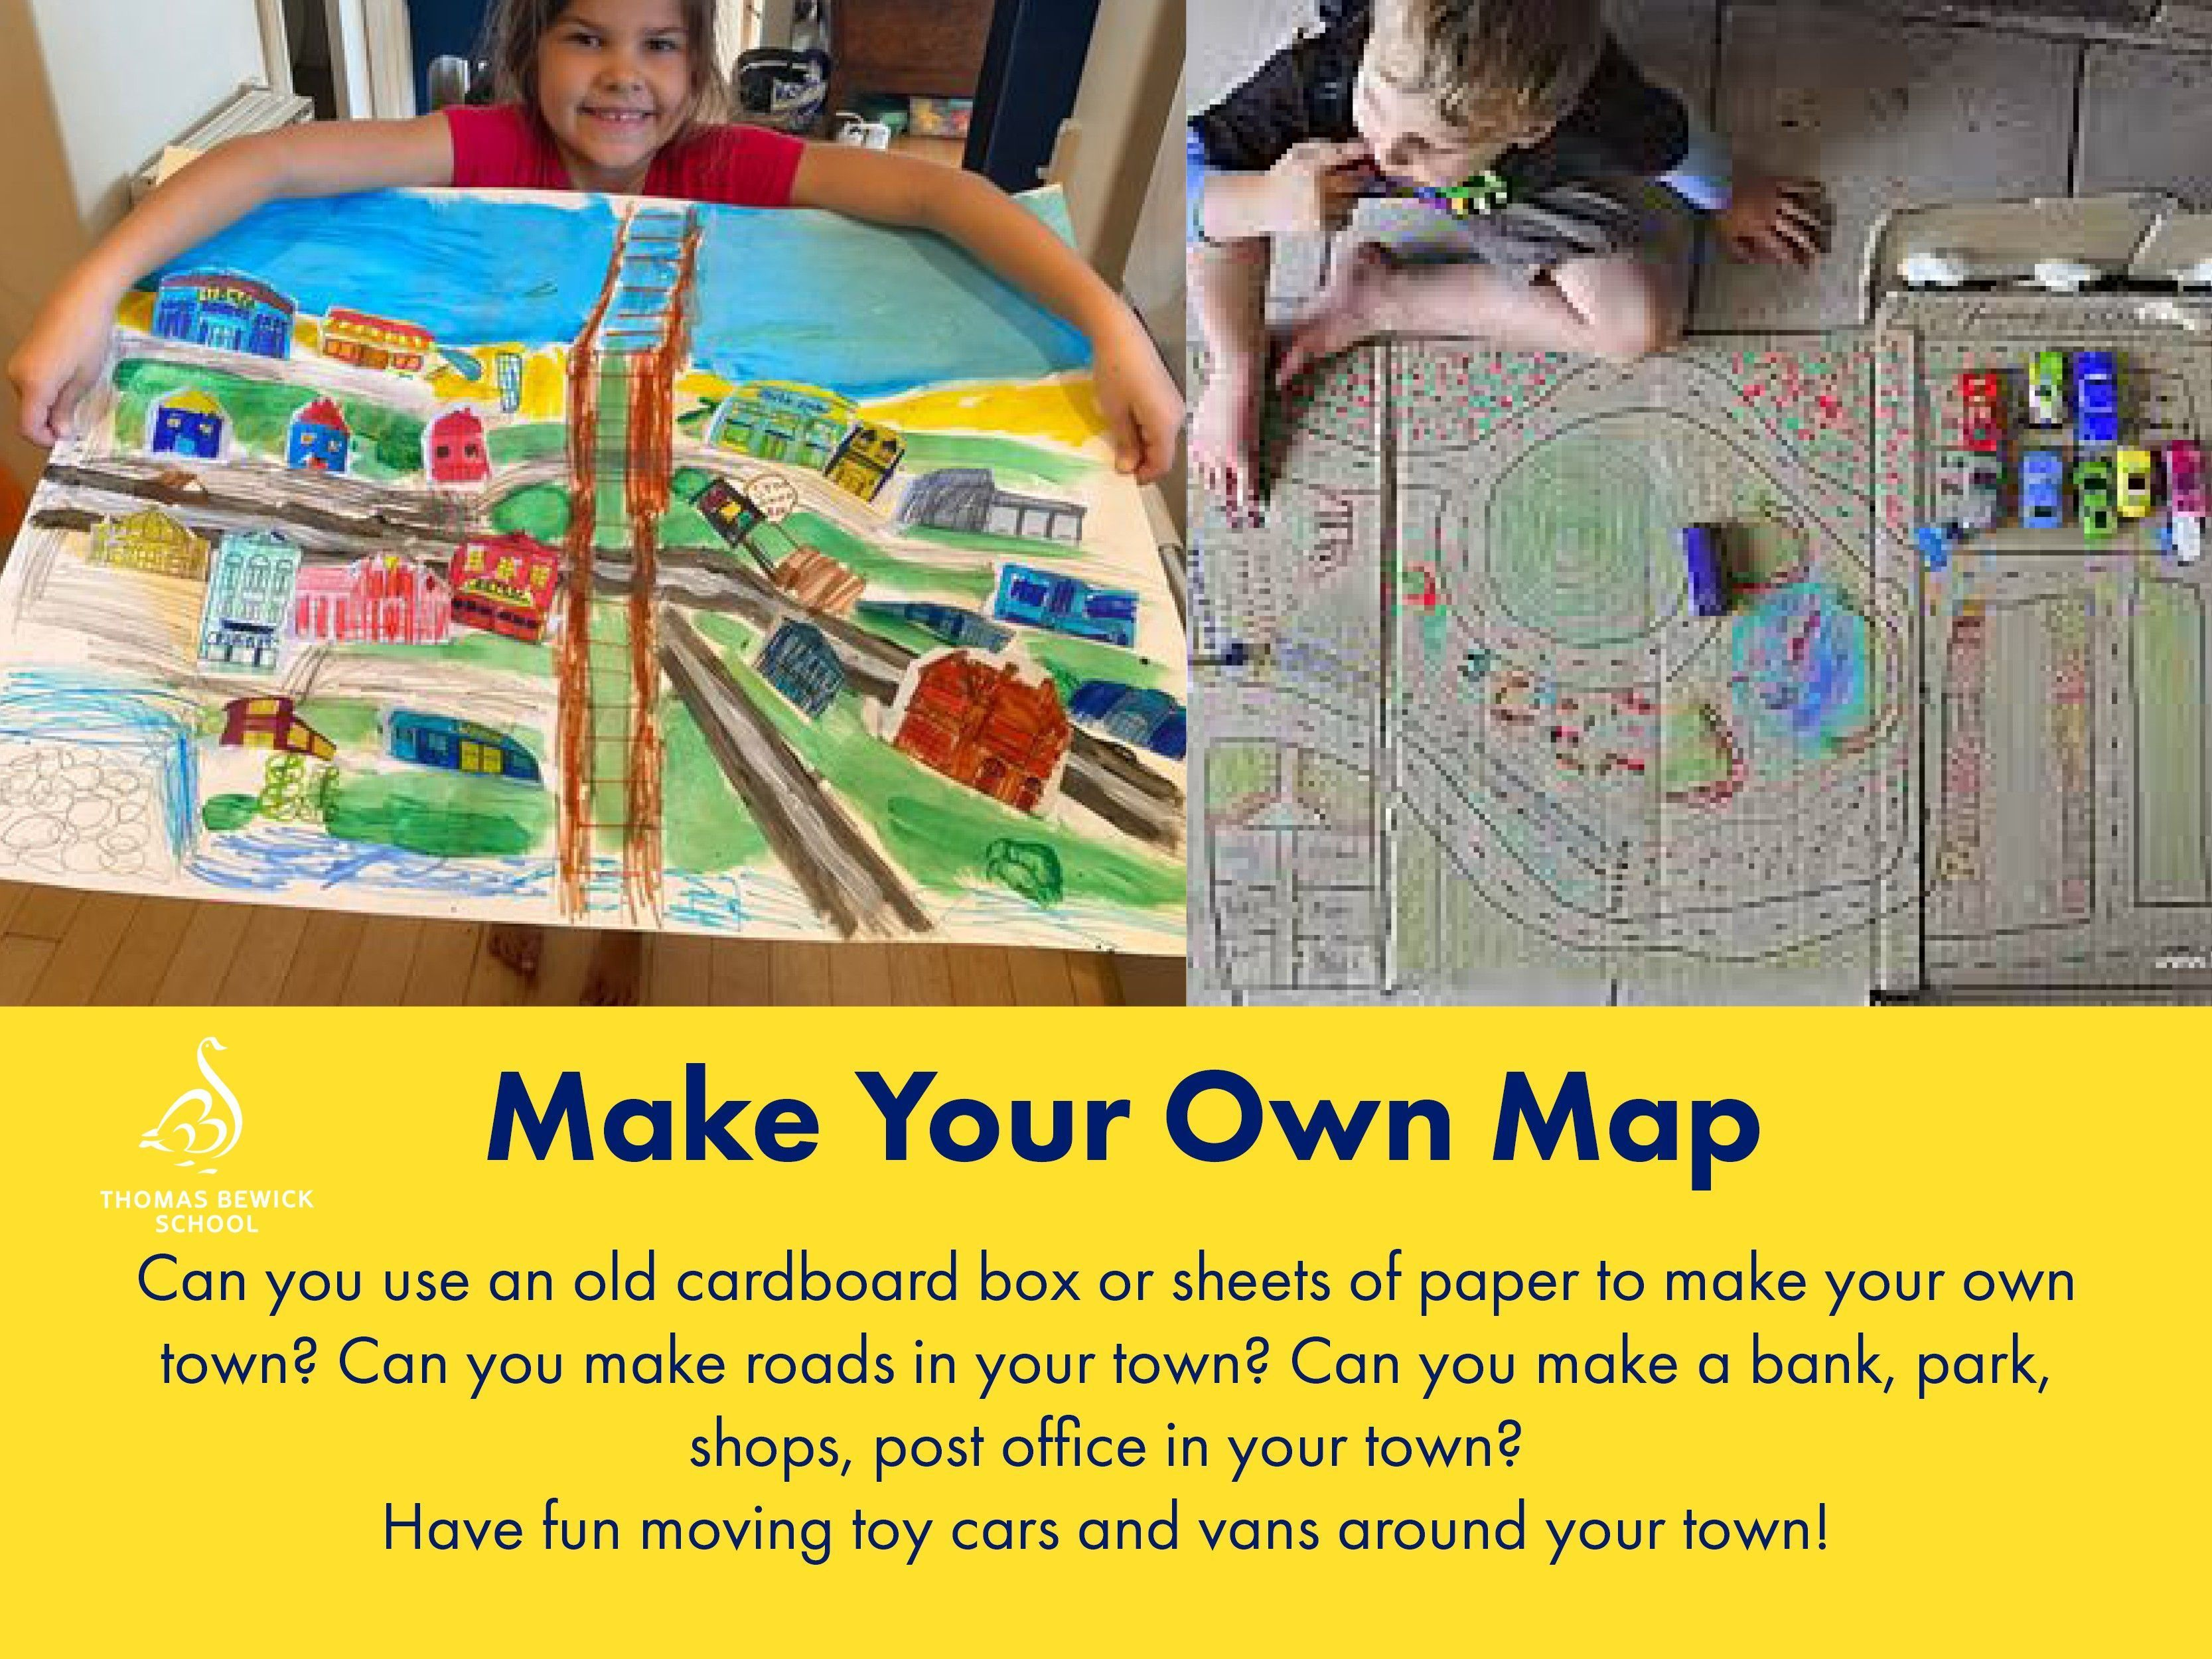 Make Your Own Map